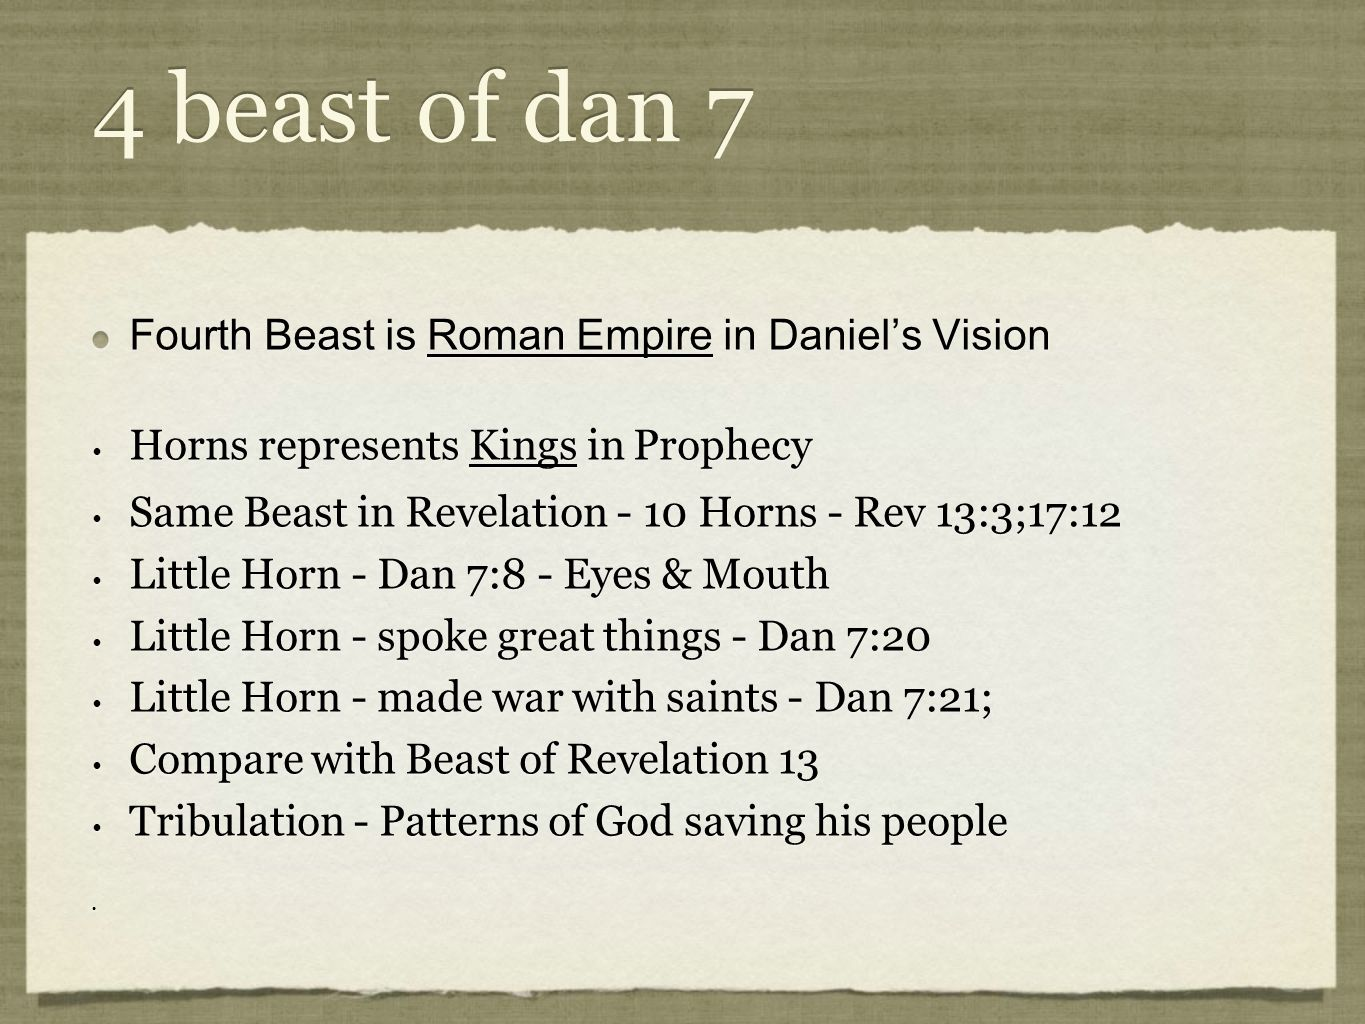 4 beast of dan 7 Fourth Beast is Roman Empire in Daniel's Vision Horns represents Kings in Prophecy Same Beast in Revelation - 10 Horns - Rev 13:3;17:12 Little Horn - Dan 7:8 - Eyes & Mouth Little Horn - spoke great things - Dan 7:20 Little Horn - made war with saints - Dan 7:21; Compare with Beast of Revelation 13 Tribulation - Patterns of God saving his people Fourth Beast is Roman Empire in Daniel's Vision Horns represents Kings in Prophecy Same Beast in Revelation - 10 Horns - Rev 13:3;17:12 Little Horn - Dan 7:8 - Eyes & Mouth Little Horn - spoke great things - Dan 7:20 Little Horn - made war with saints - Dan 7:21; Compare with Beast of Revelation 13 Tribulation - Patterns of God saving his people